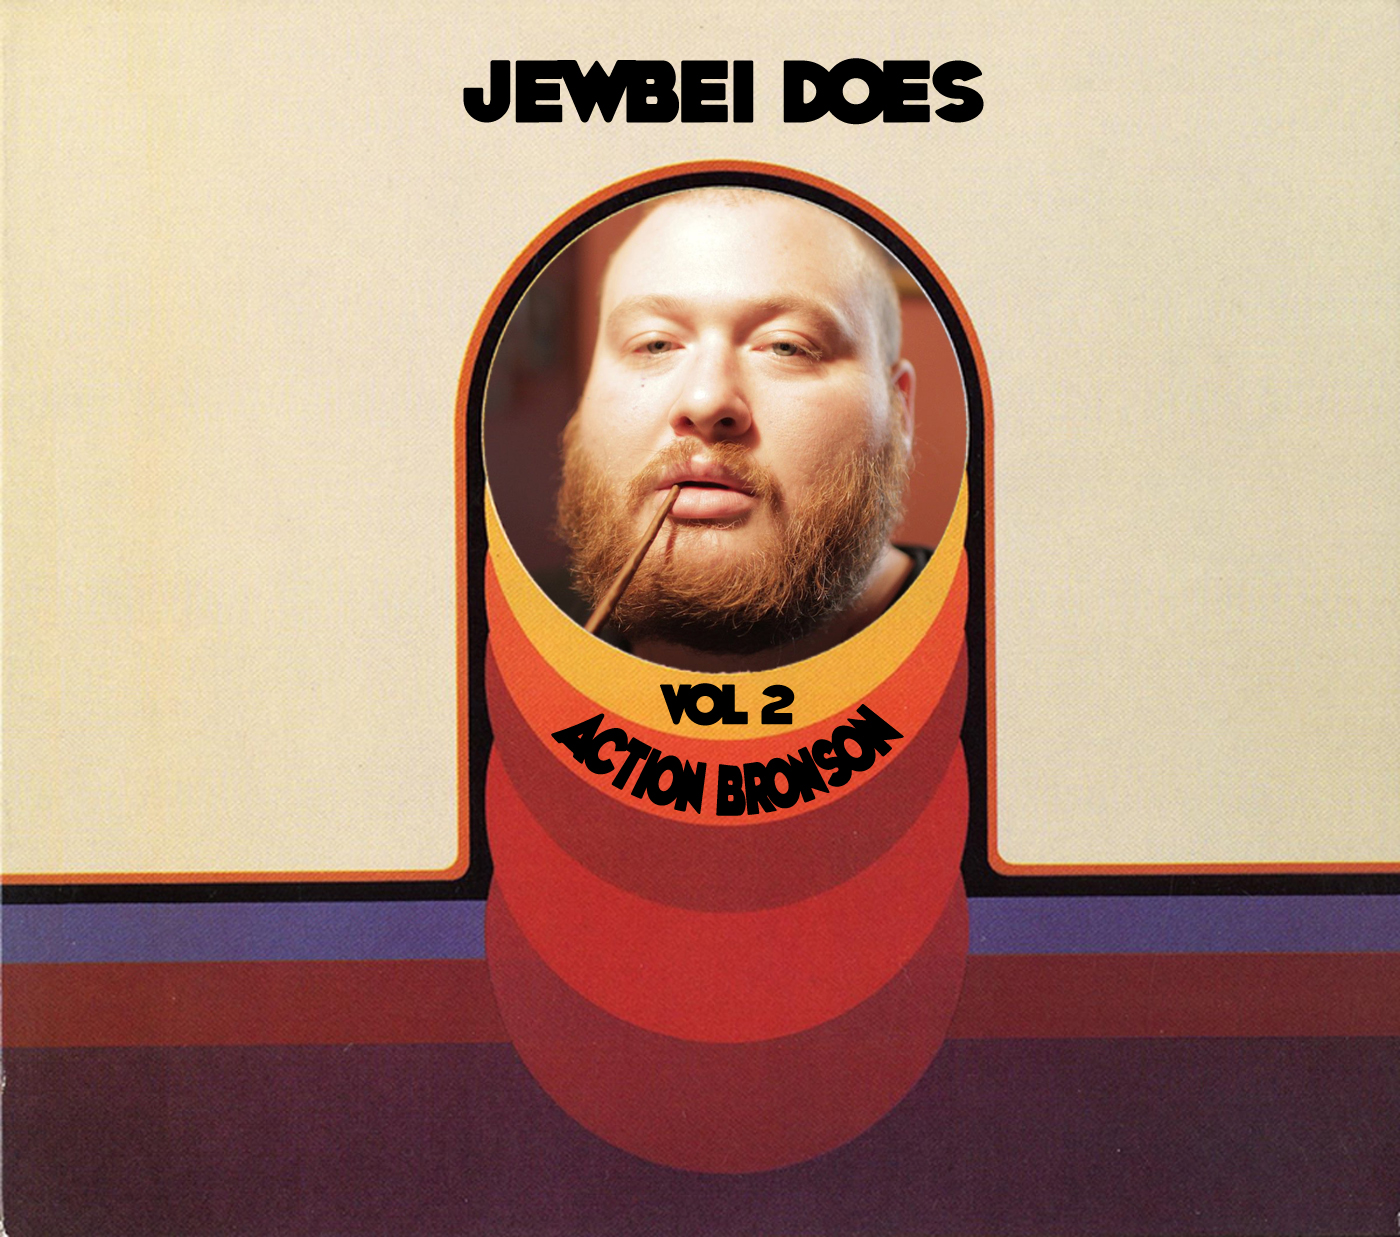 Free Download: Jewbei – Jewbei Does Action Bronson